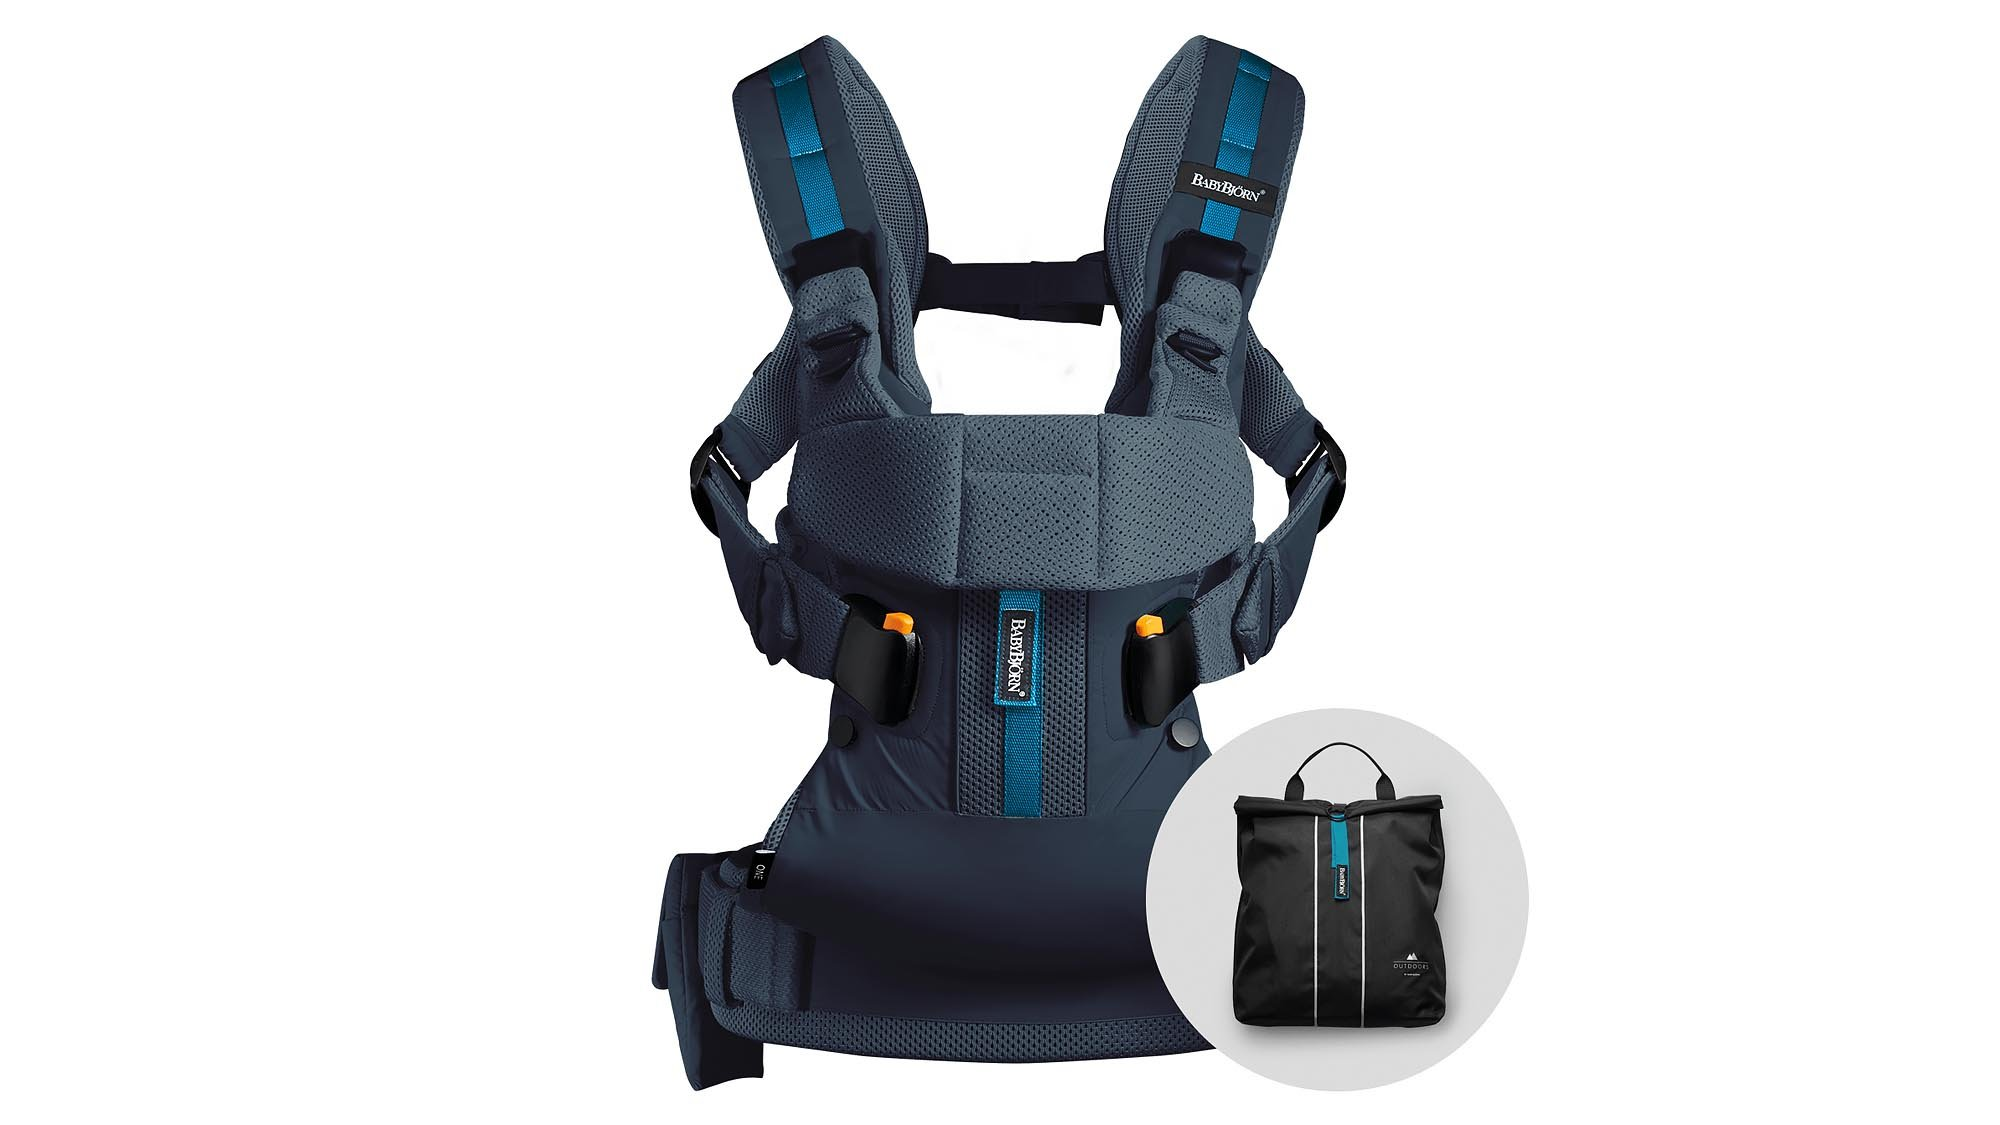 e71fe705010 This ruggedised version of Babybjörn s classic range of baby carriers is  perfect for longer walks and hikes. Clad in water- and dirt-resistant  material